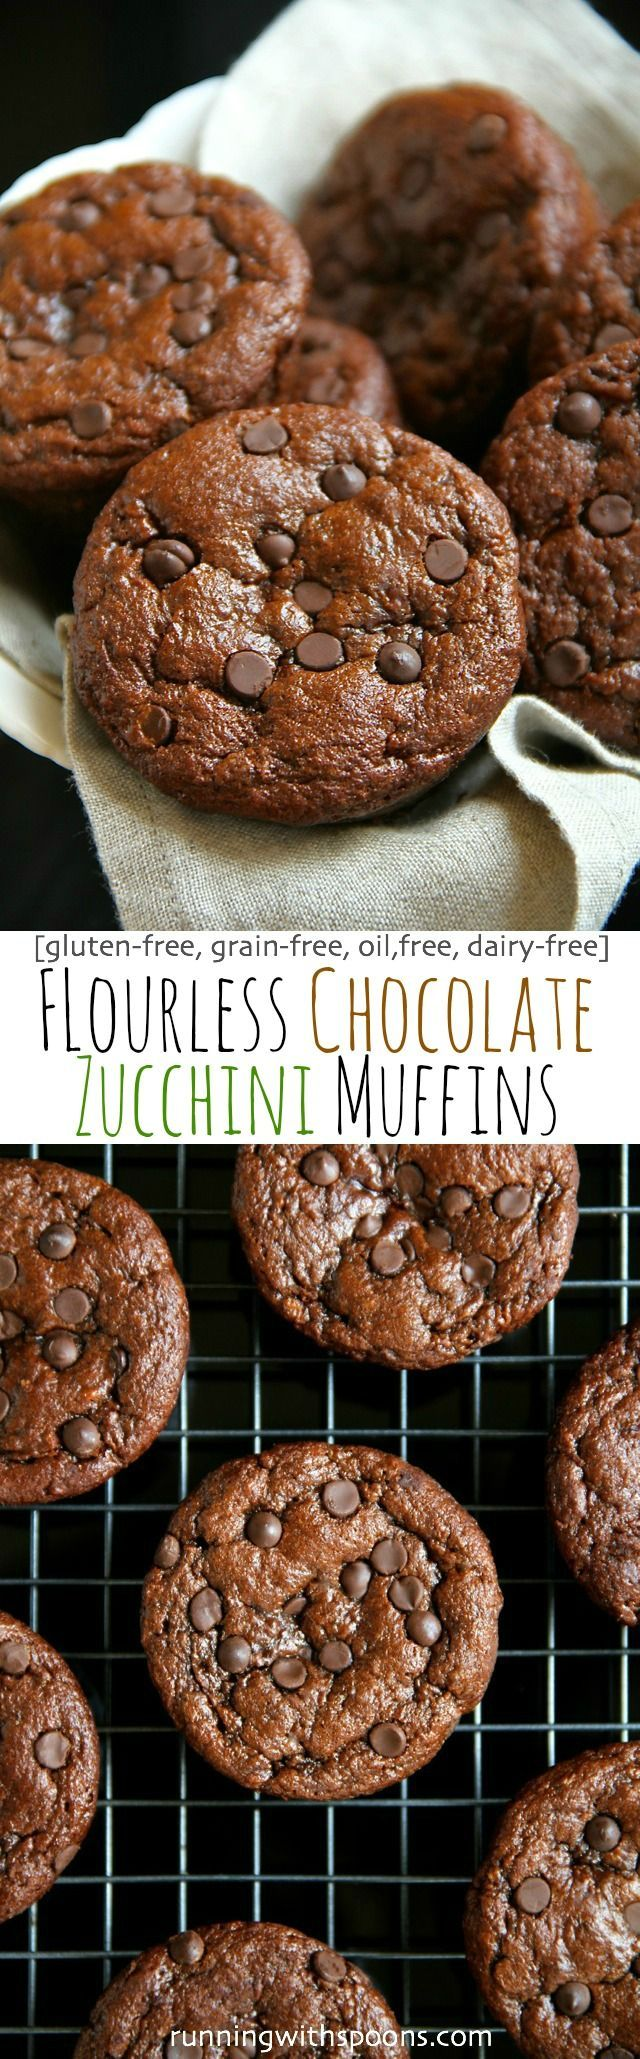 mens Muffins  Muffins Recipe and shoes uk Chocolate Chocolate Muffins quality Zucchini Chocolate   Zucchini Zucchini Flourless   Flourless